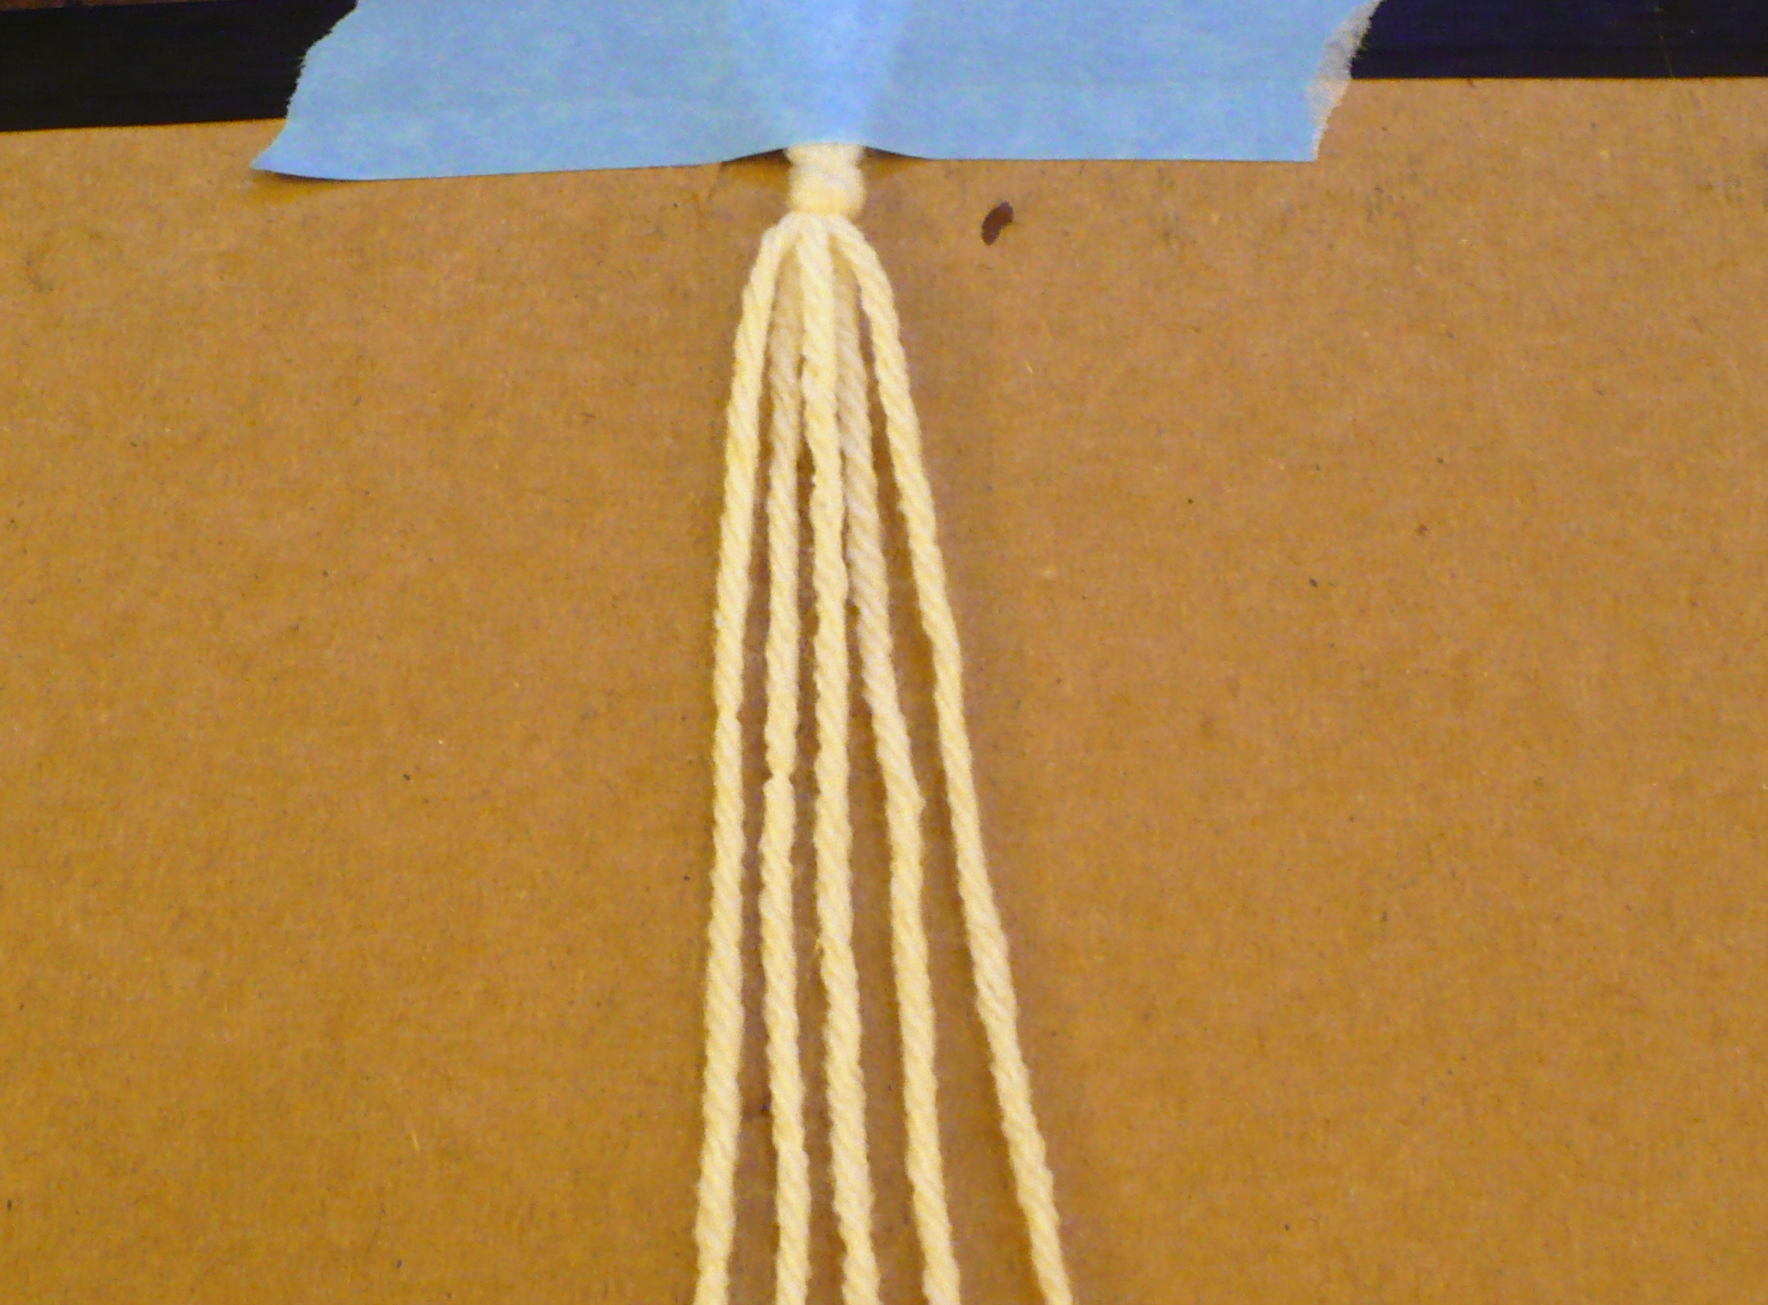 Make A Drinking Straw Weaving Loom Dollar Store Crafts